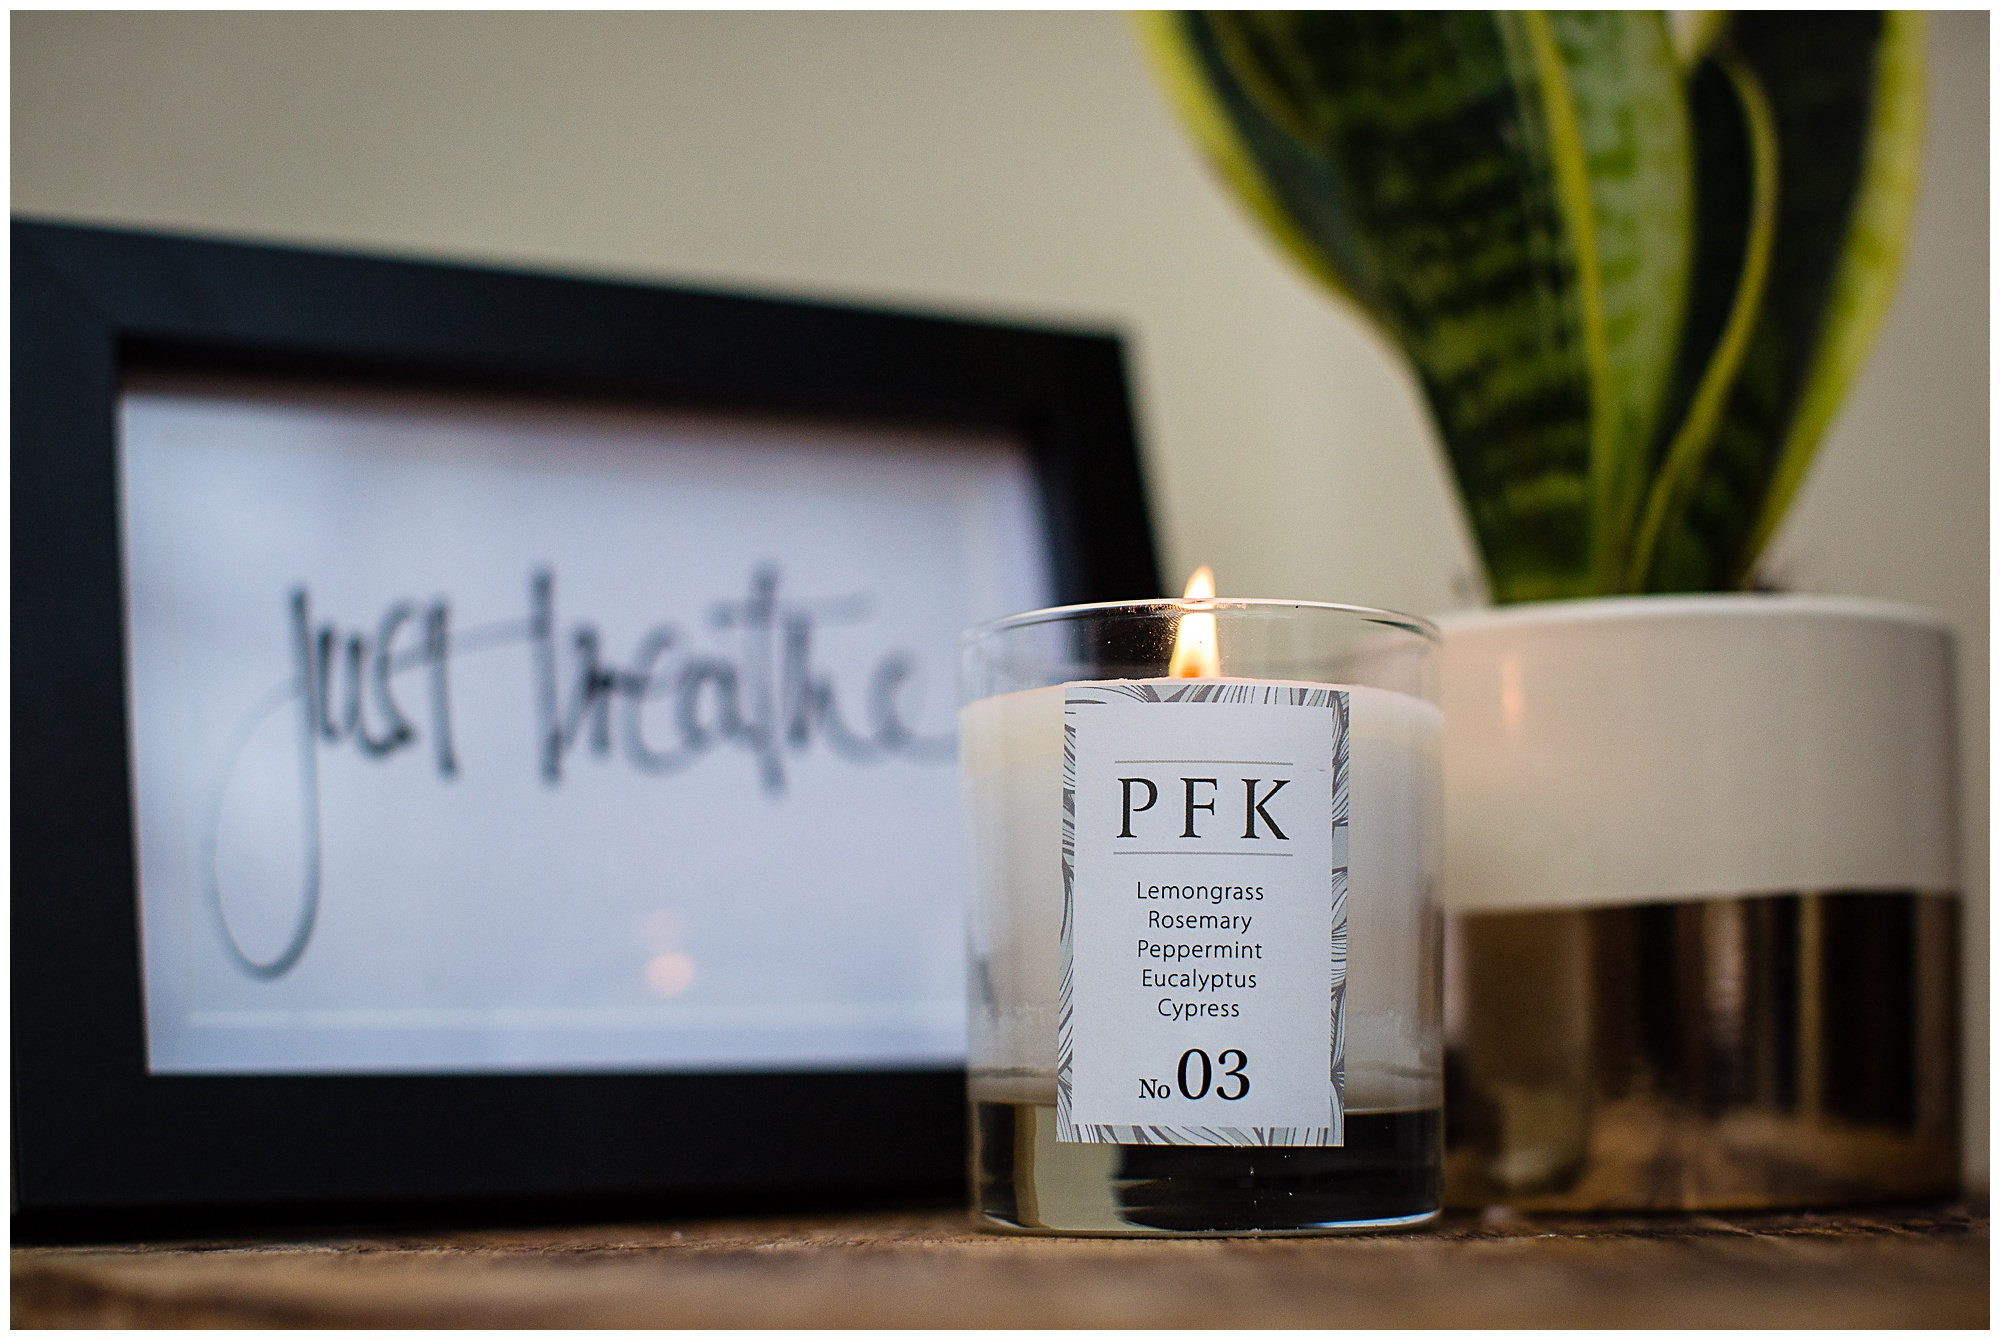 PFK candle lit on a wooden surface with beautiful plant and just breathe in black frame